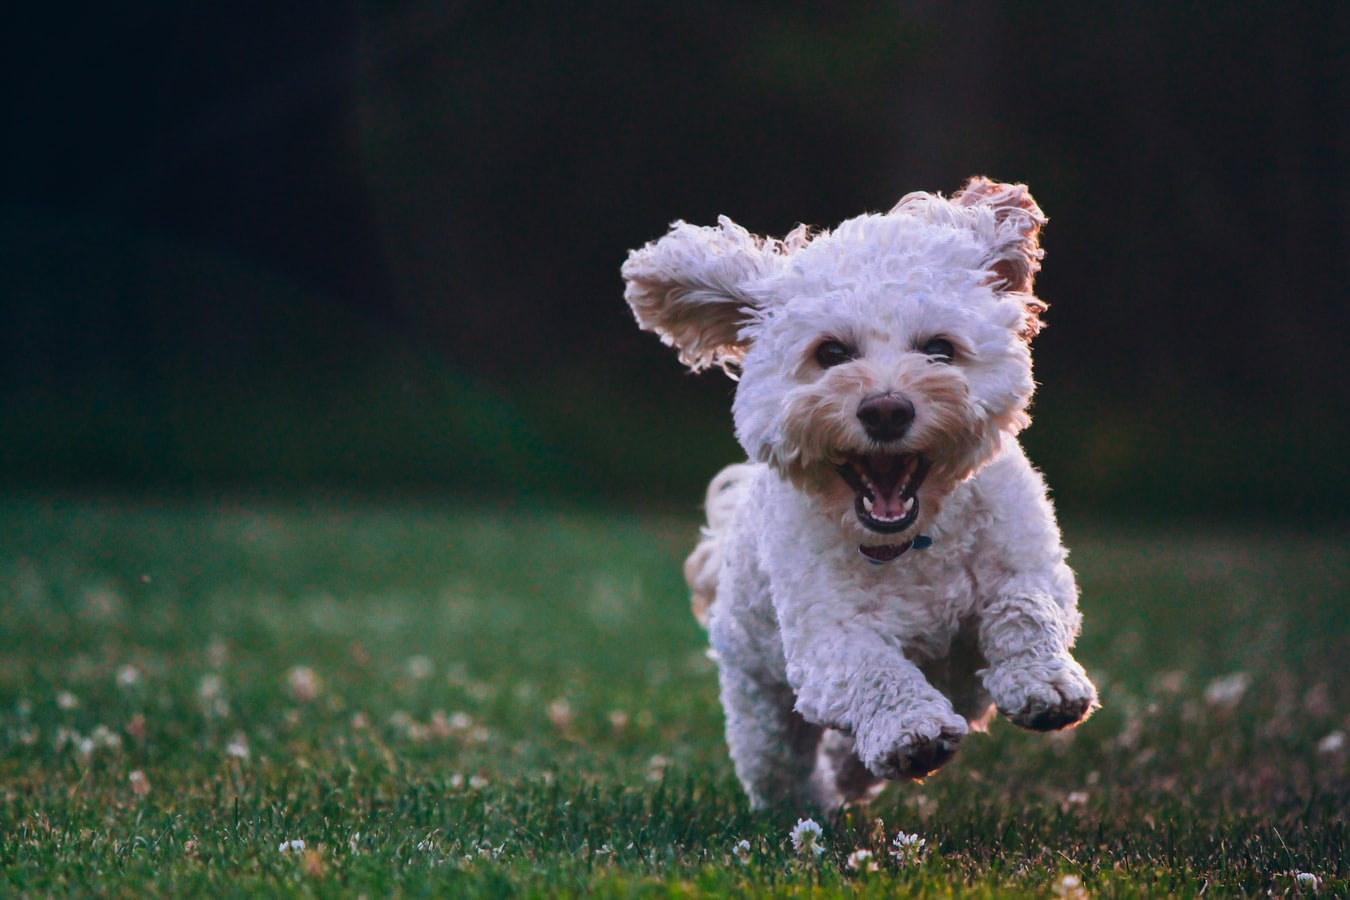 Puppy smiling and running